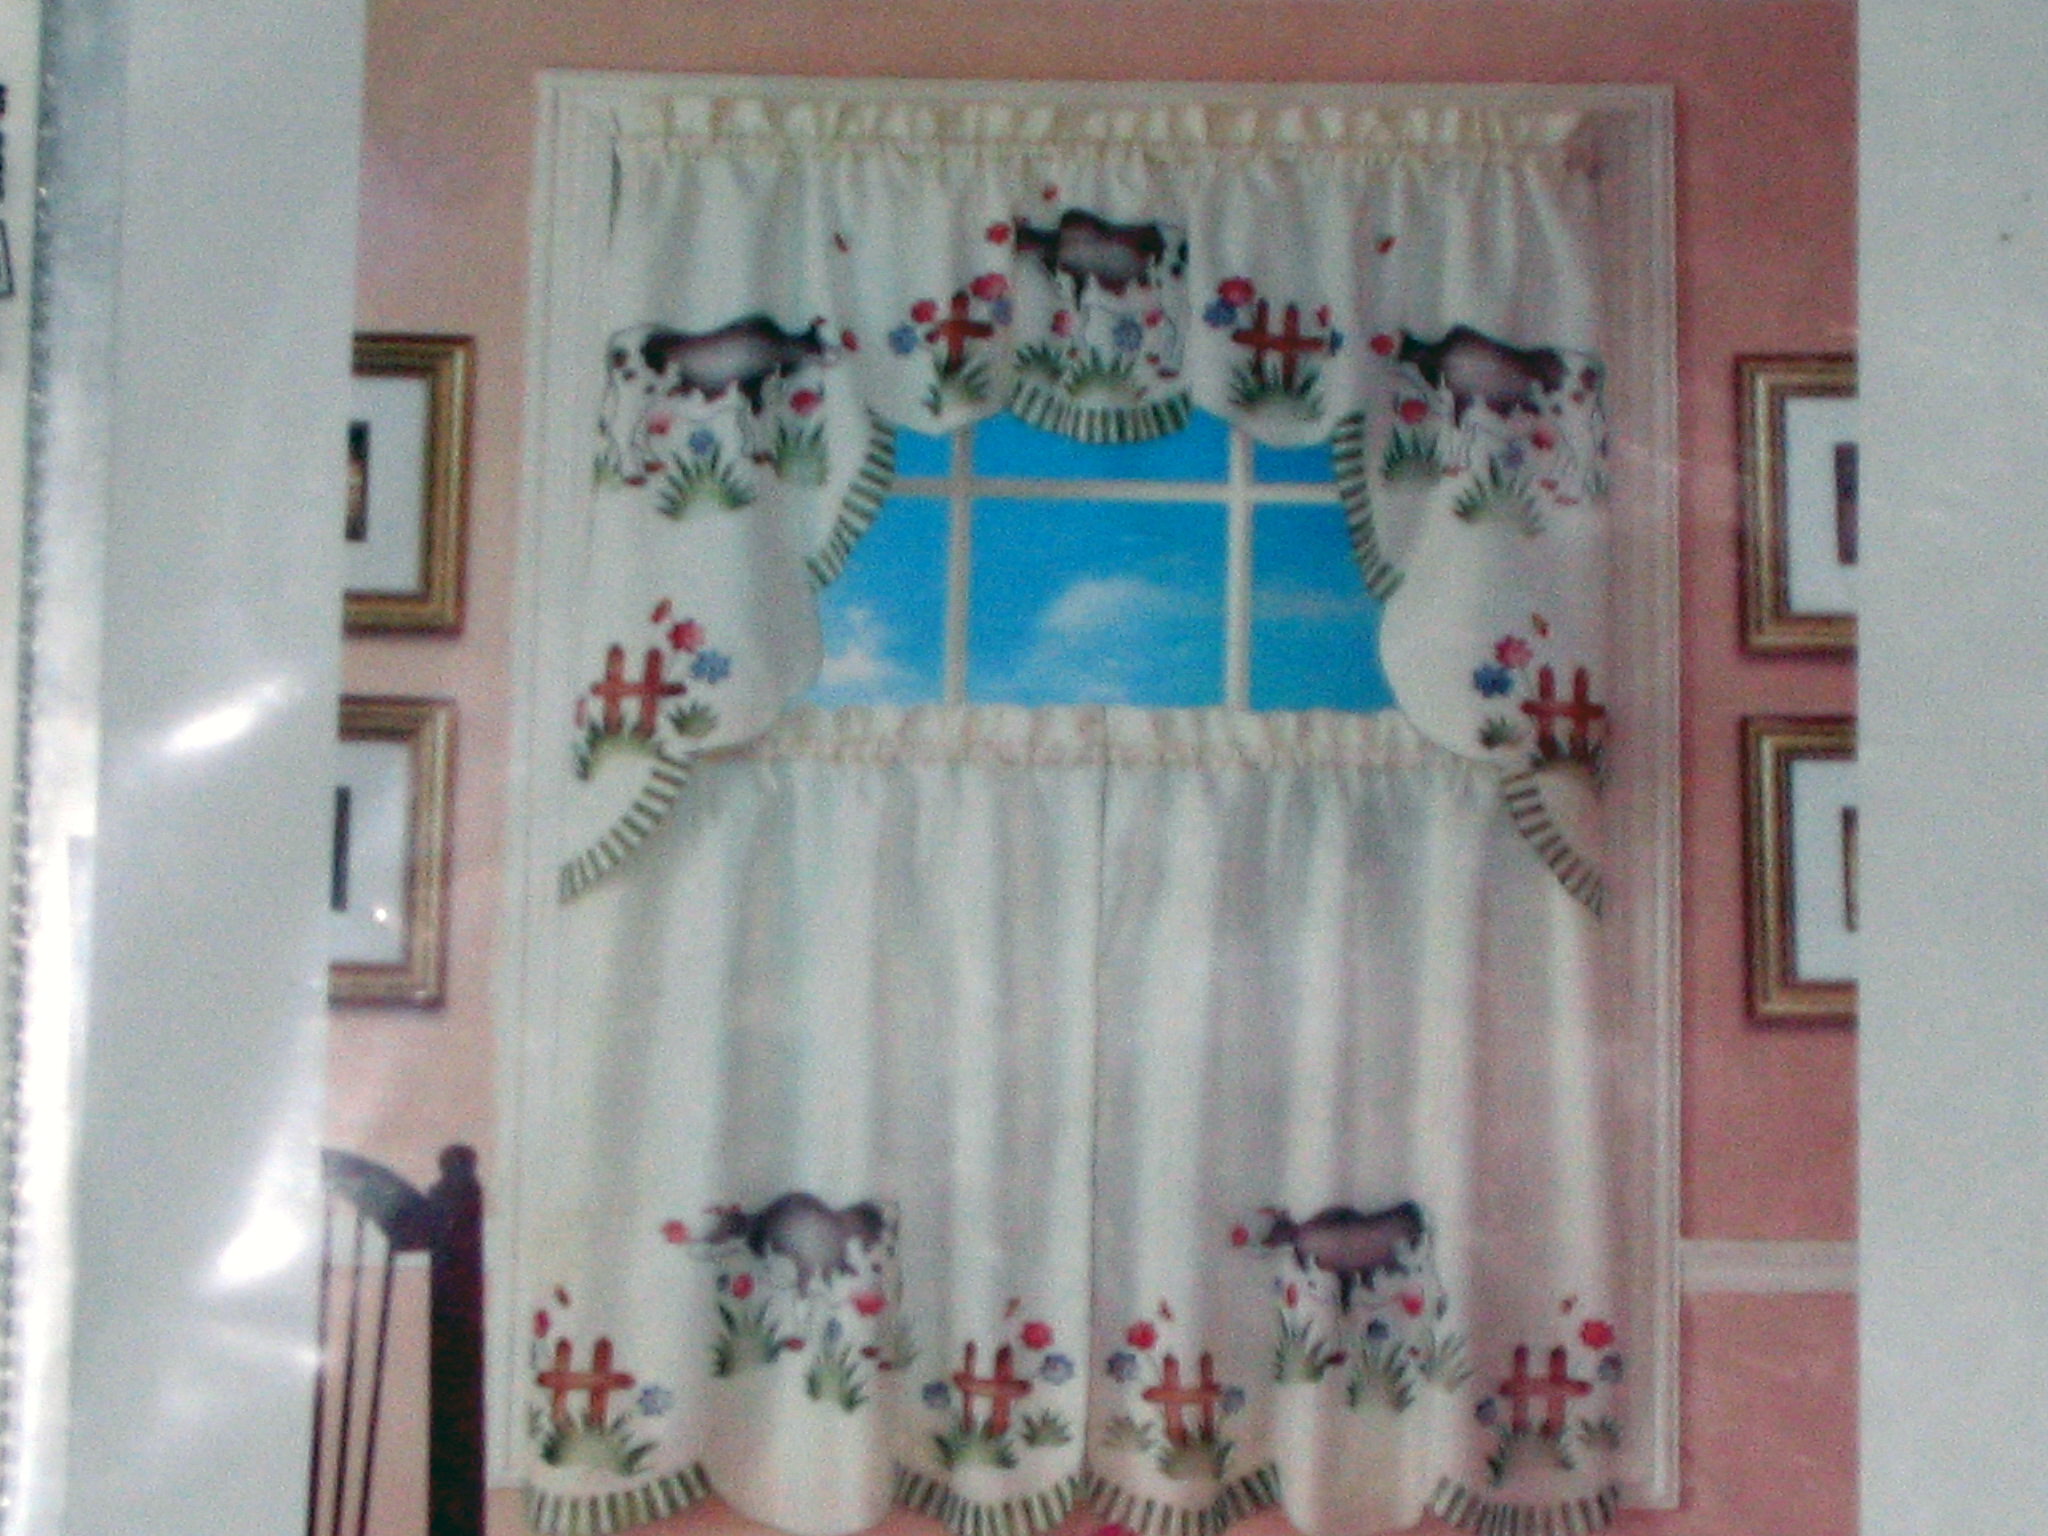 cow.jpg cow.jpg Kitchen Curtains cow.jpg Cow Kitchen Curtains posted ...